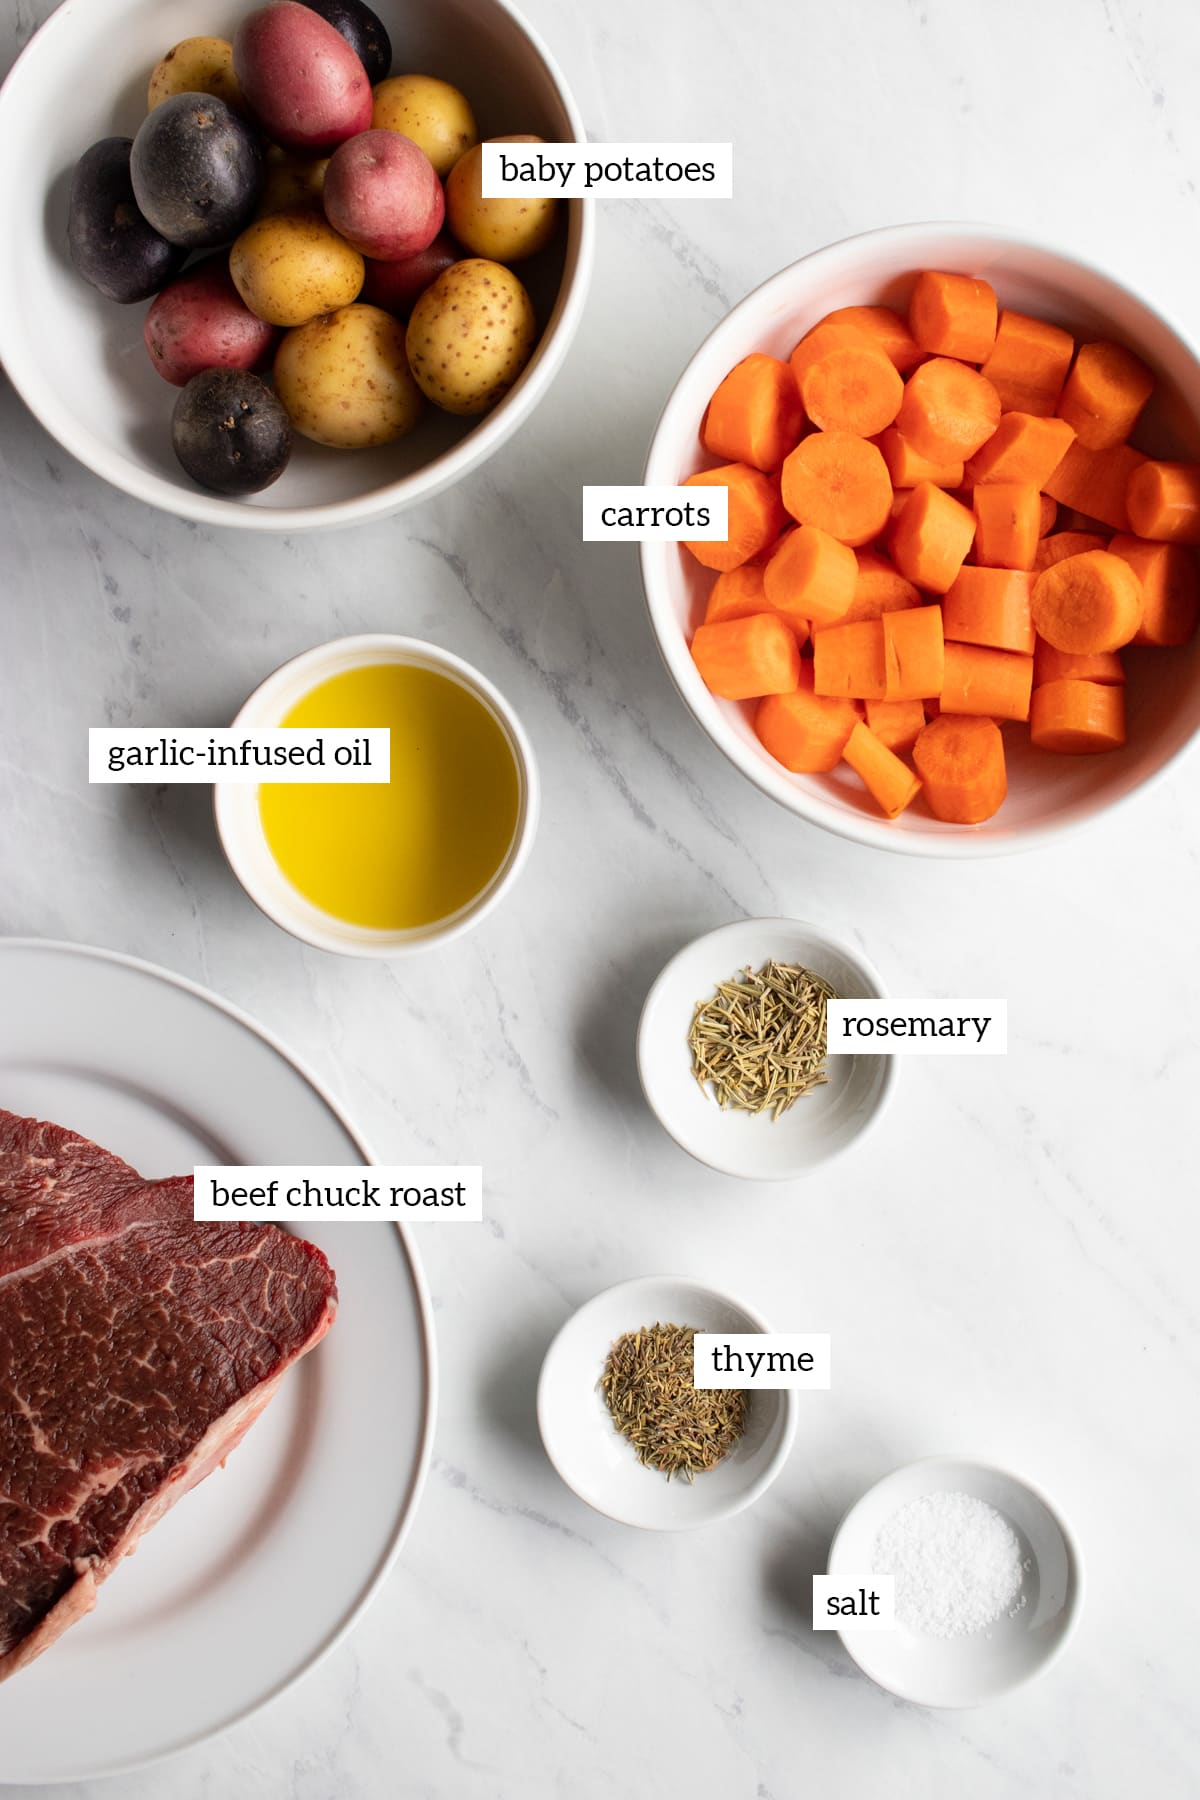 Ingredients needed to make slow cooker pot roast are measured out into small white dishes